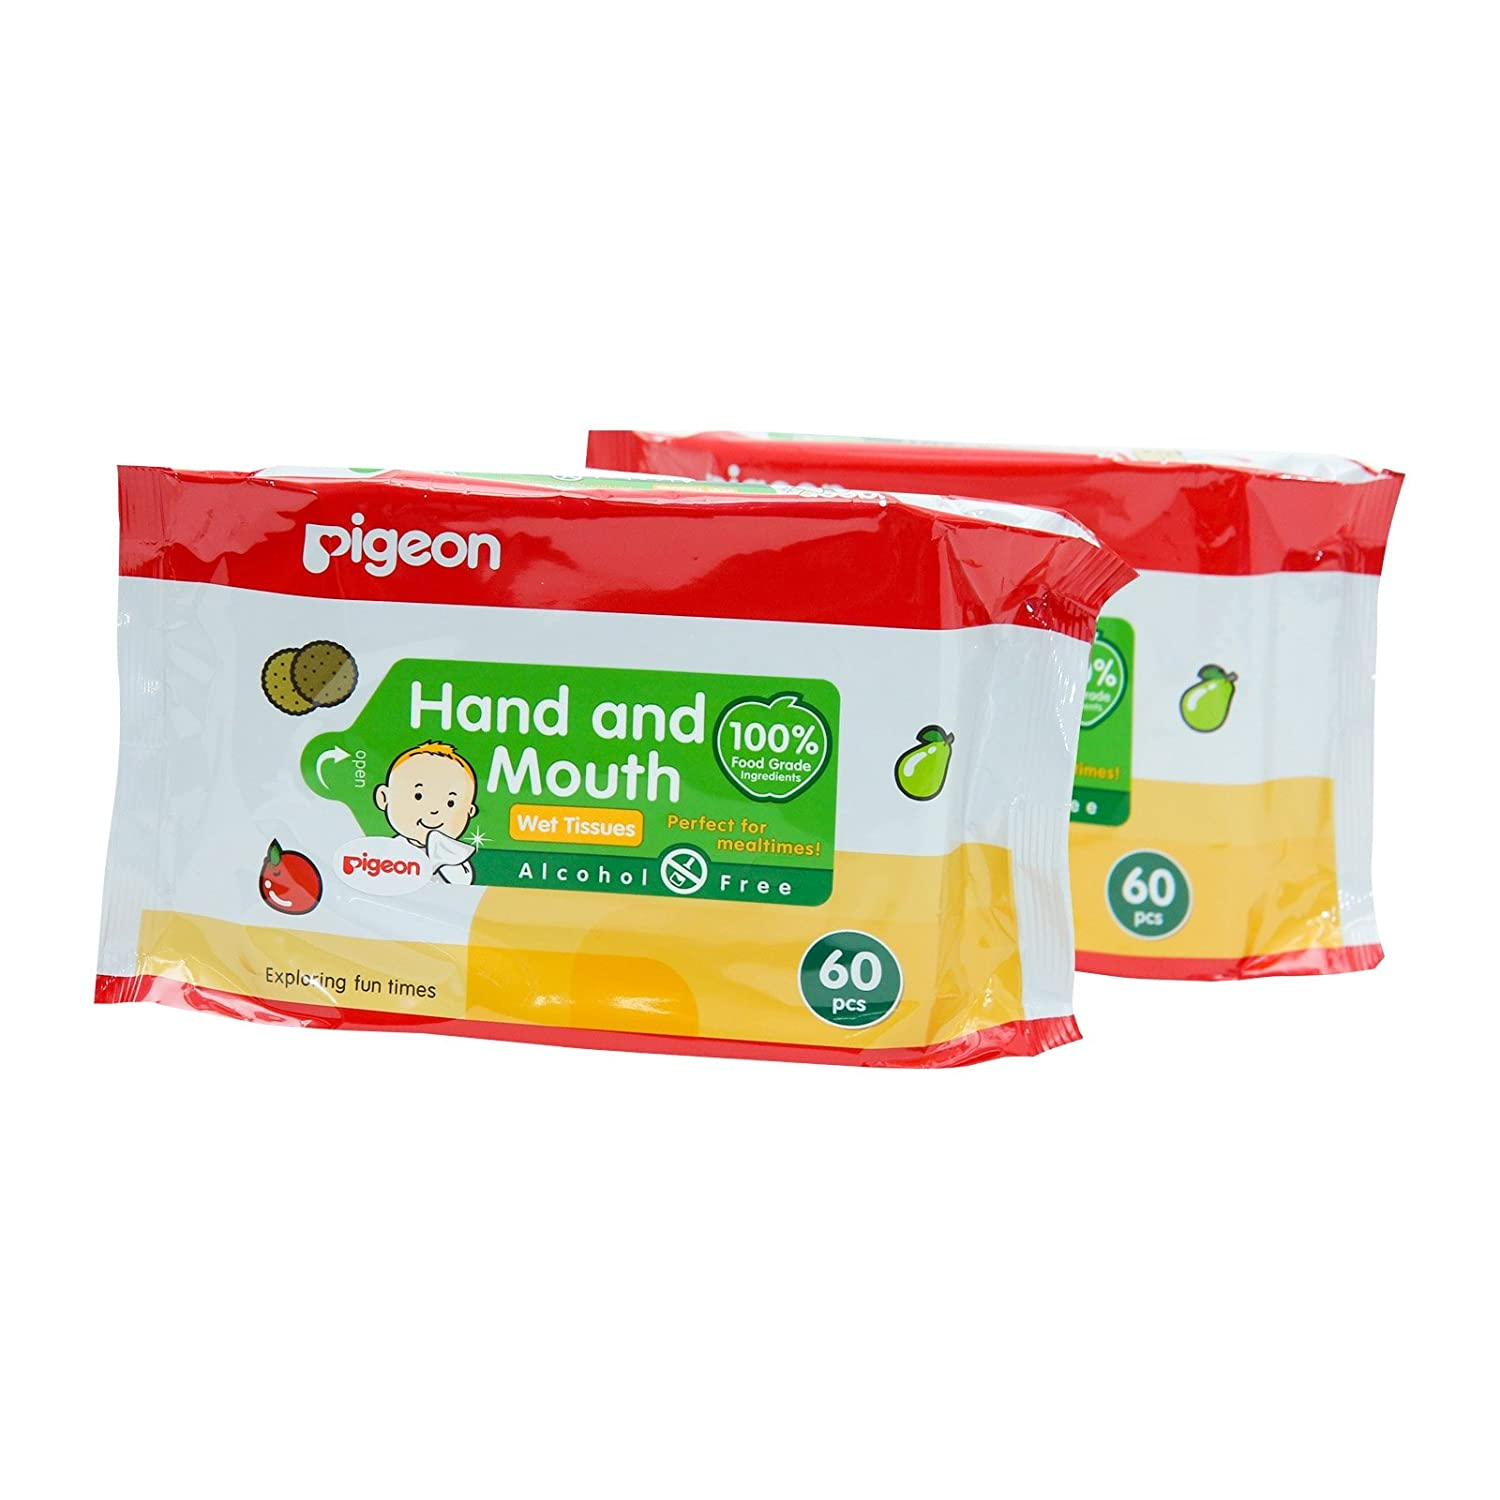 Baby Wipes, pigeon Baby Wipes Hand and Mouth Size 60 Sheets X 2 Packs THAILAND